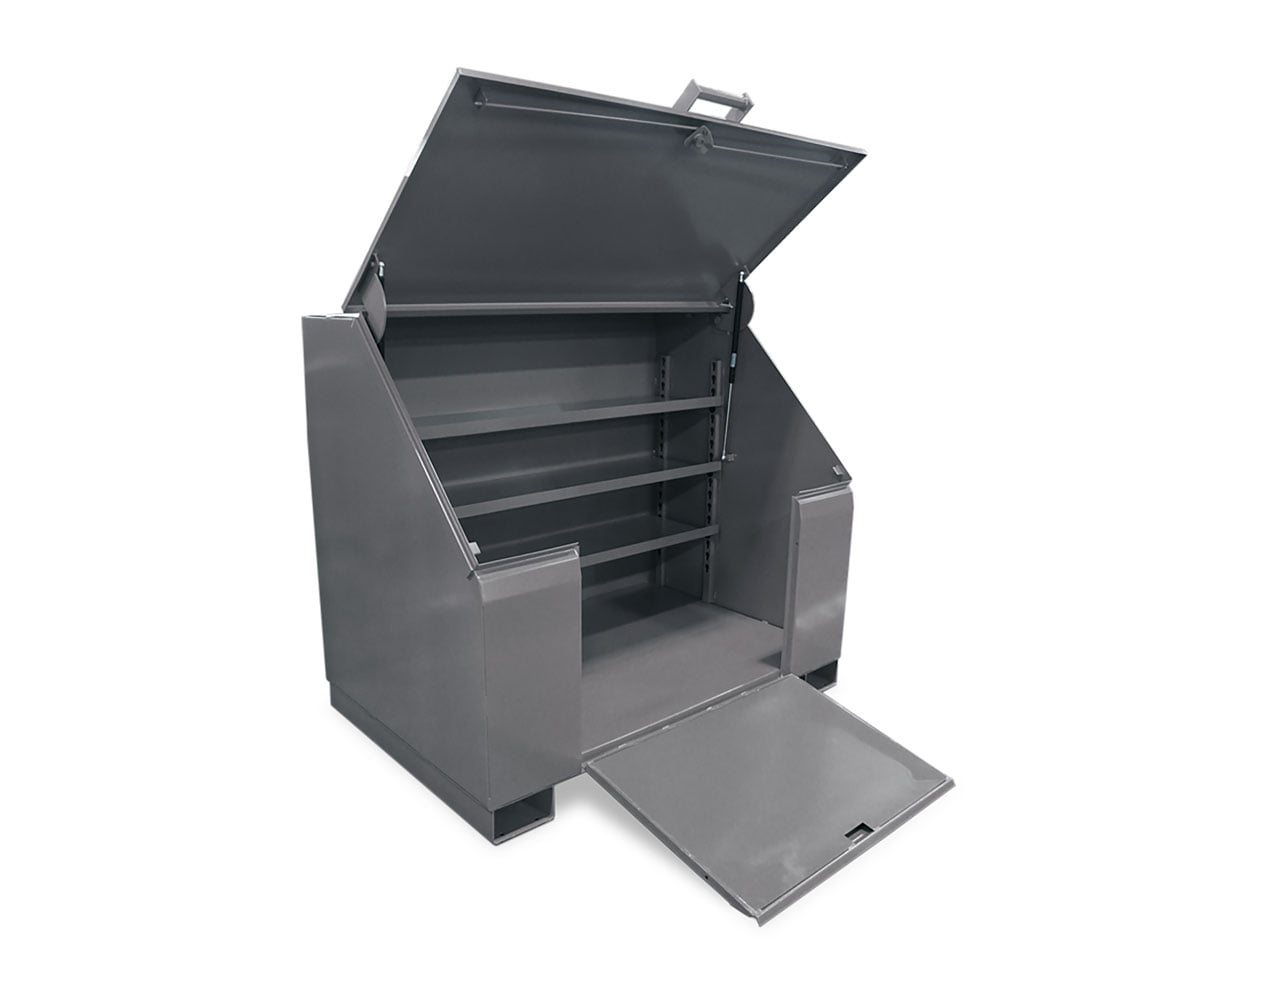 Extra Heavy Duty 12 GA Job Site Box with Lift-Up Lid, Ramp, 3 Shelves – 60 In. W x 36 In. D x 48 In. H